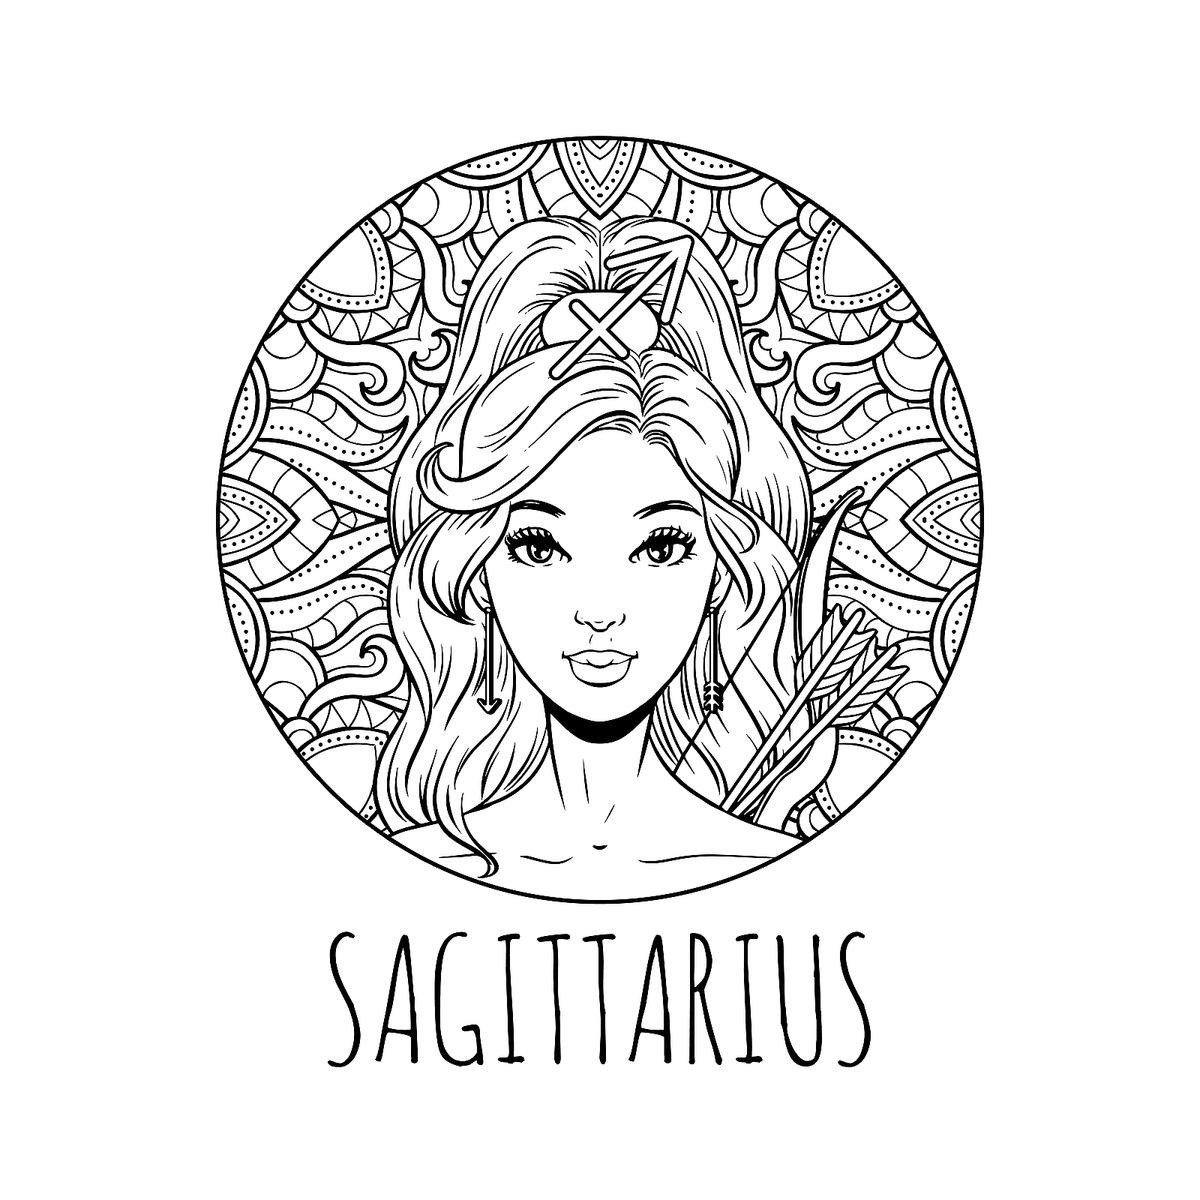 coloring sign zodiac coloring pages printable zodiac signs coloring sign coloring 1 1